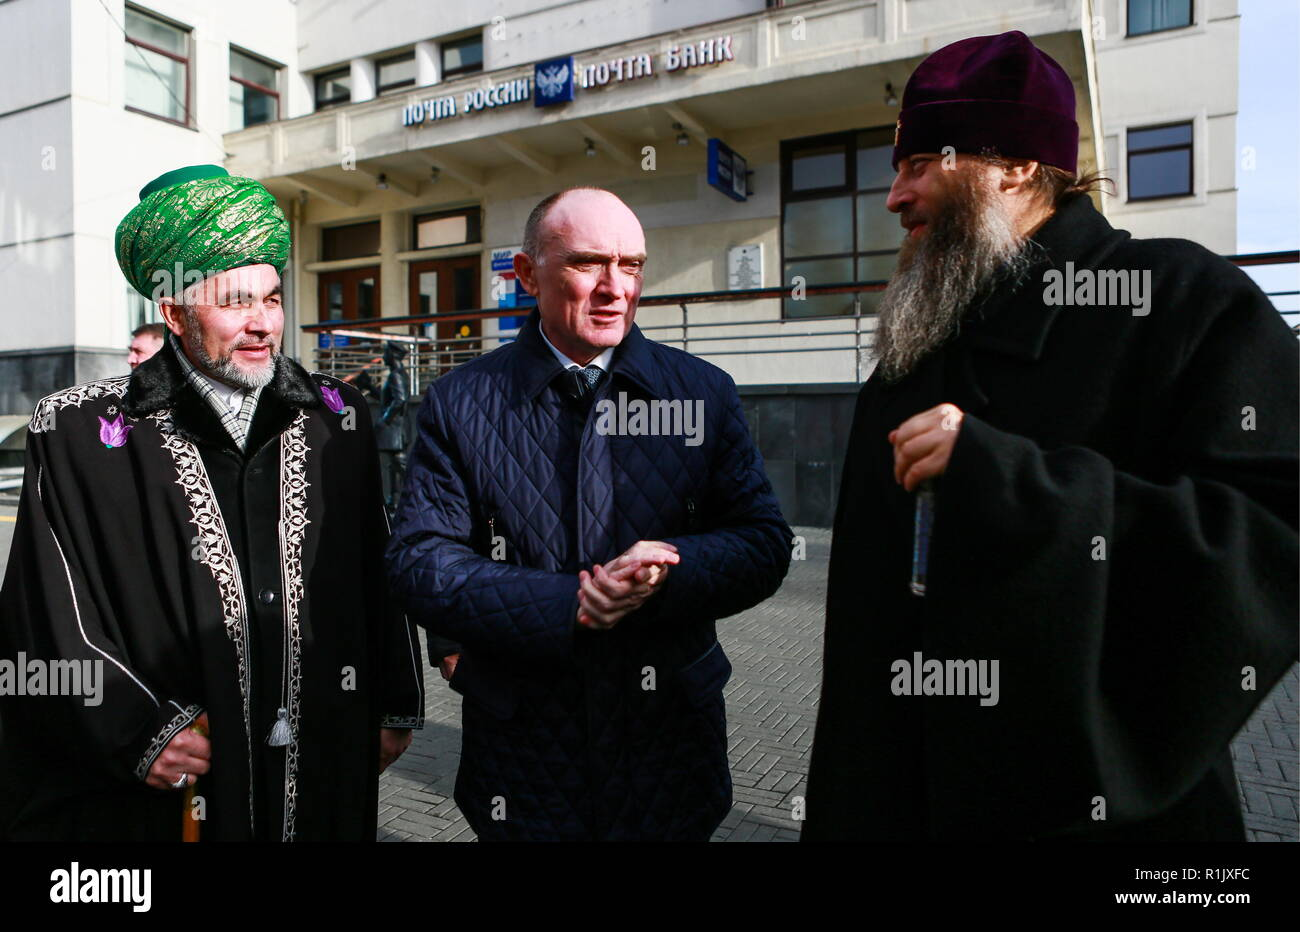 Chelyabinsk, Russia. 04th Nov, 2018. CHELYABINSK, RUSSIA - NOVEMBER 4, 2018: The Mufti of Chelyabinsk Region and Kurgan Region Rinat Rayev (L), the Governor of Chlyabinsk Region Boris Dubrovsky (C), and Russian Orthodox Metropolitan Nikodim of Chelyabinsk and Miass during a celebration marking National Unity Day. Nail Fattakhov/TASS Credit: ITAR-TASS News Agency/Alamy Live News - Stock Image